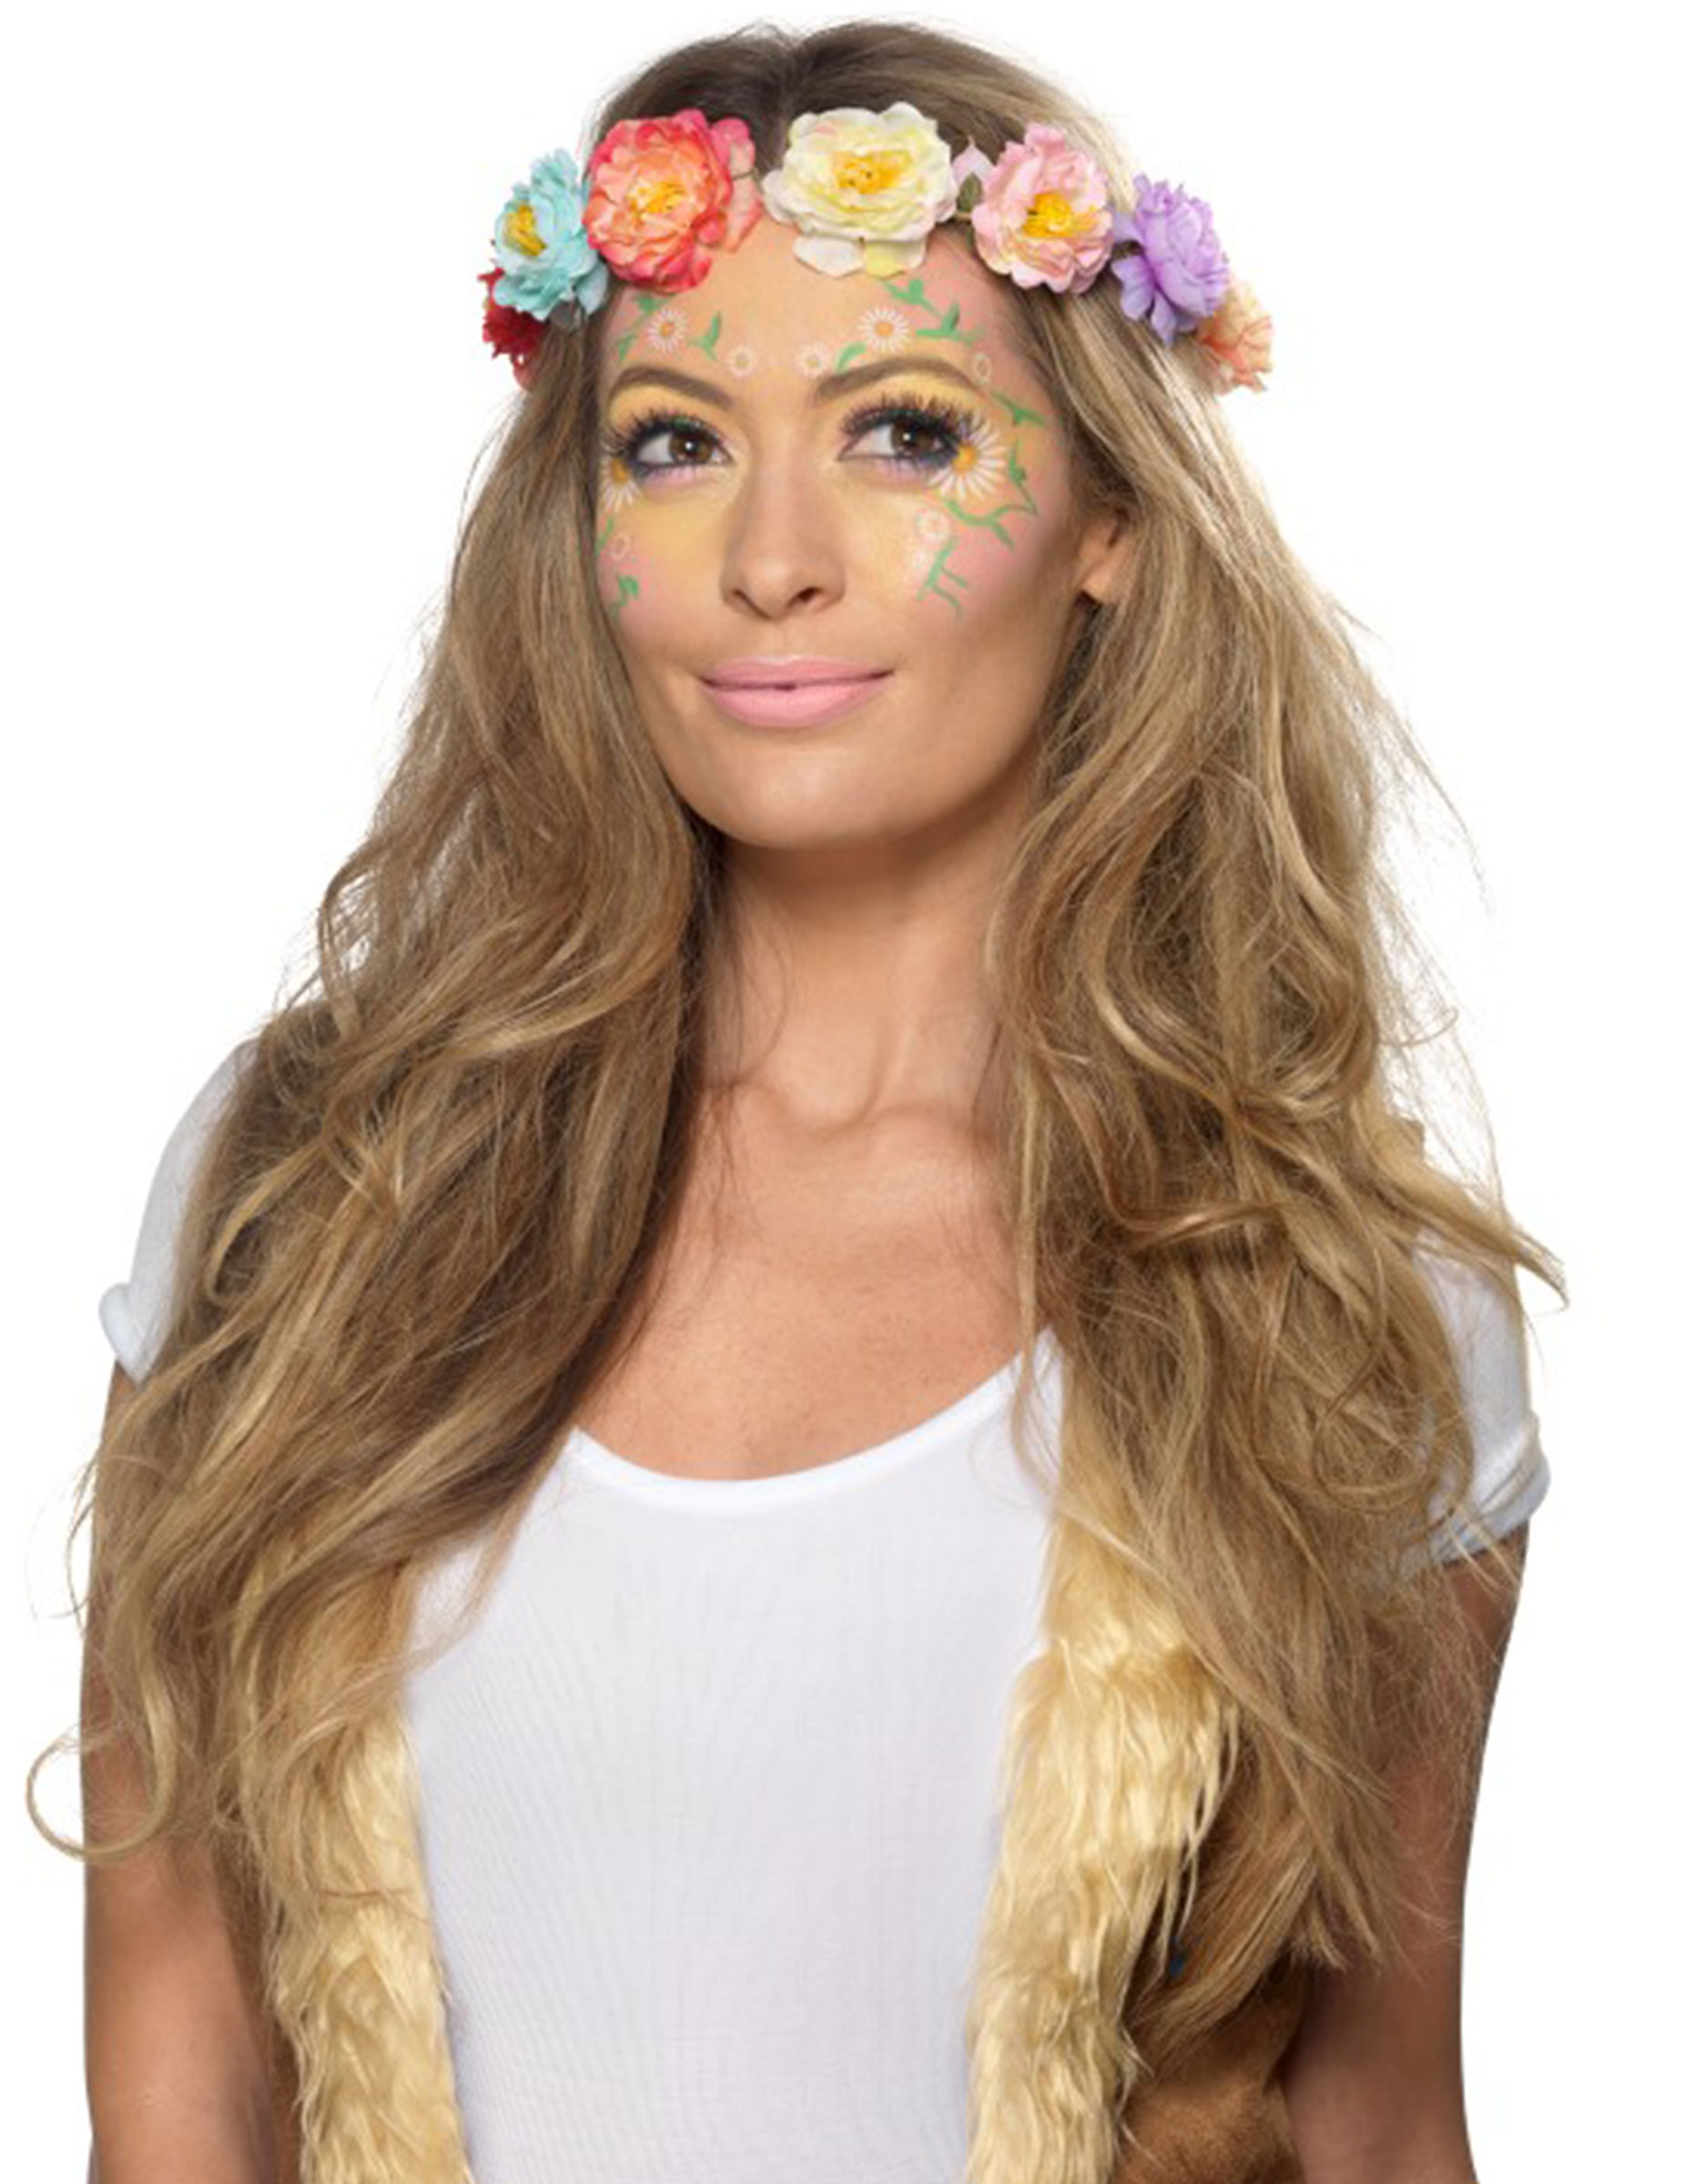 Hippie Schminkset 17 Teilig Bunt Gunstige Faschings Make Up Bei